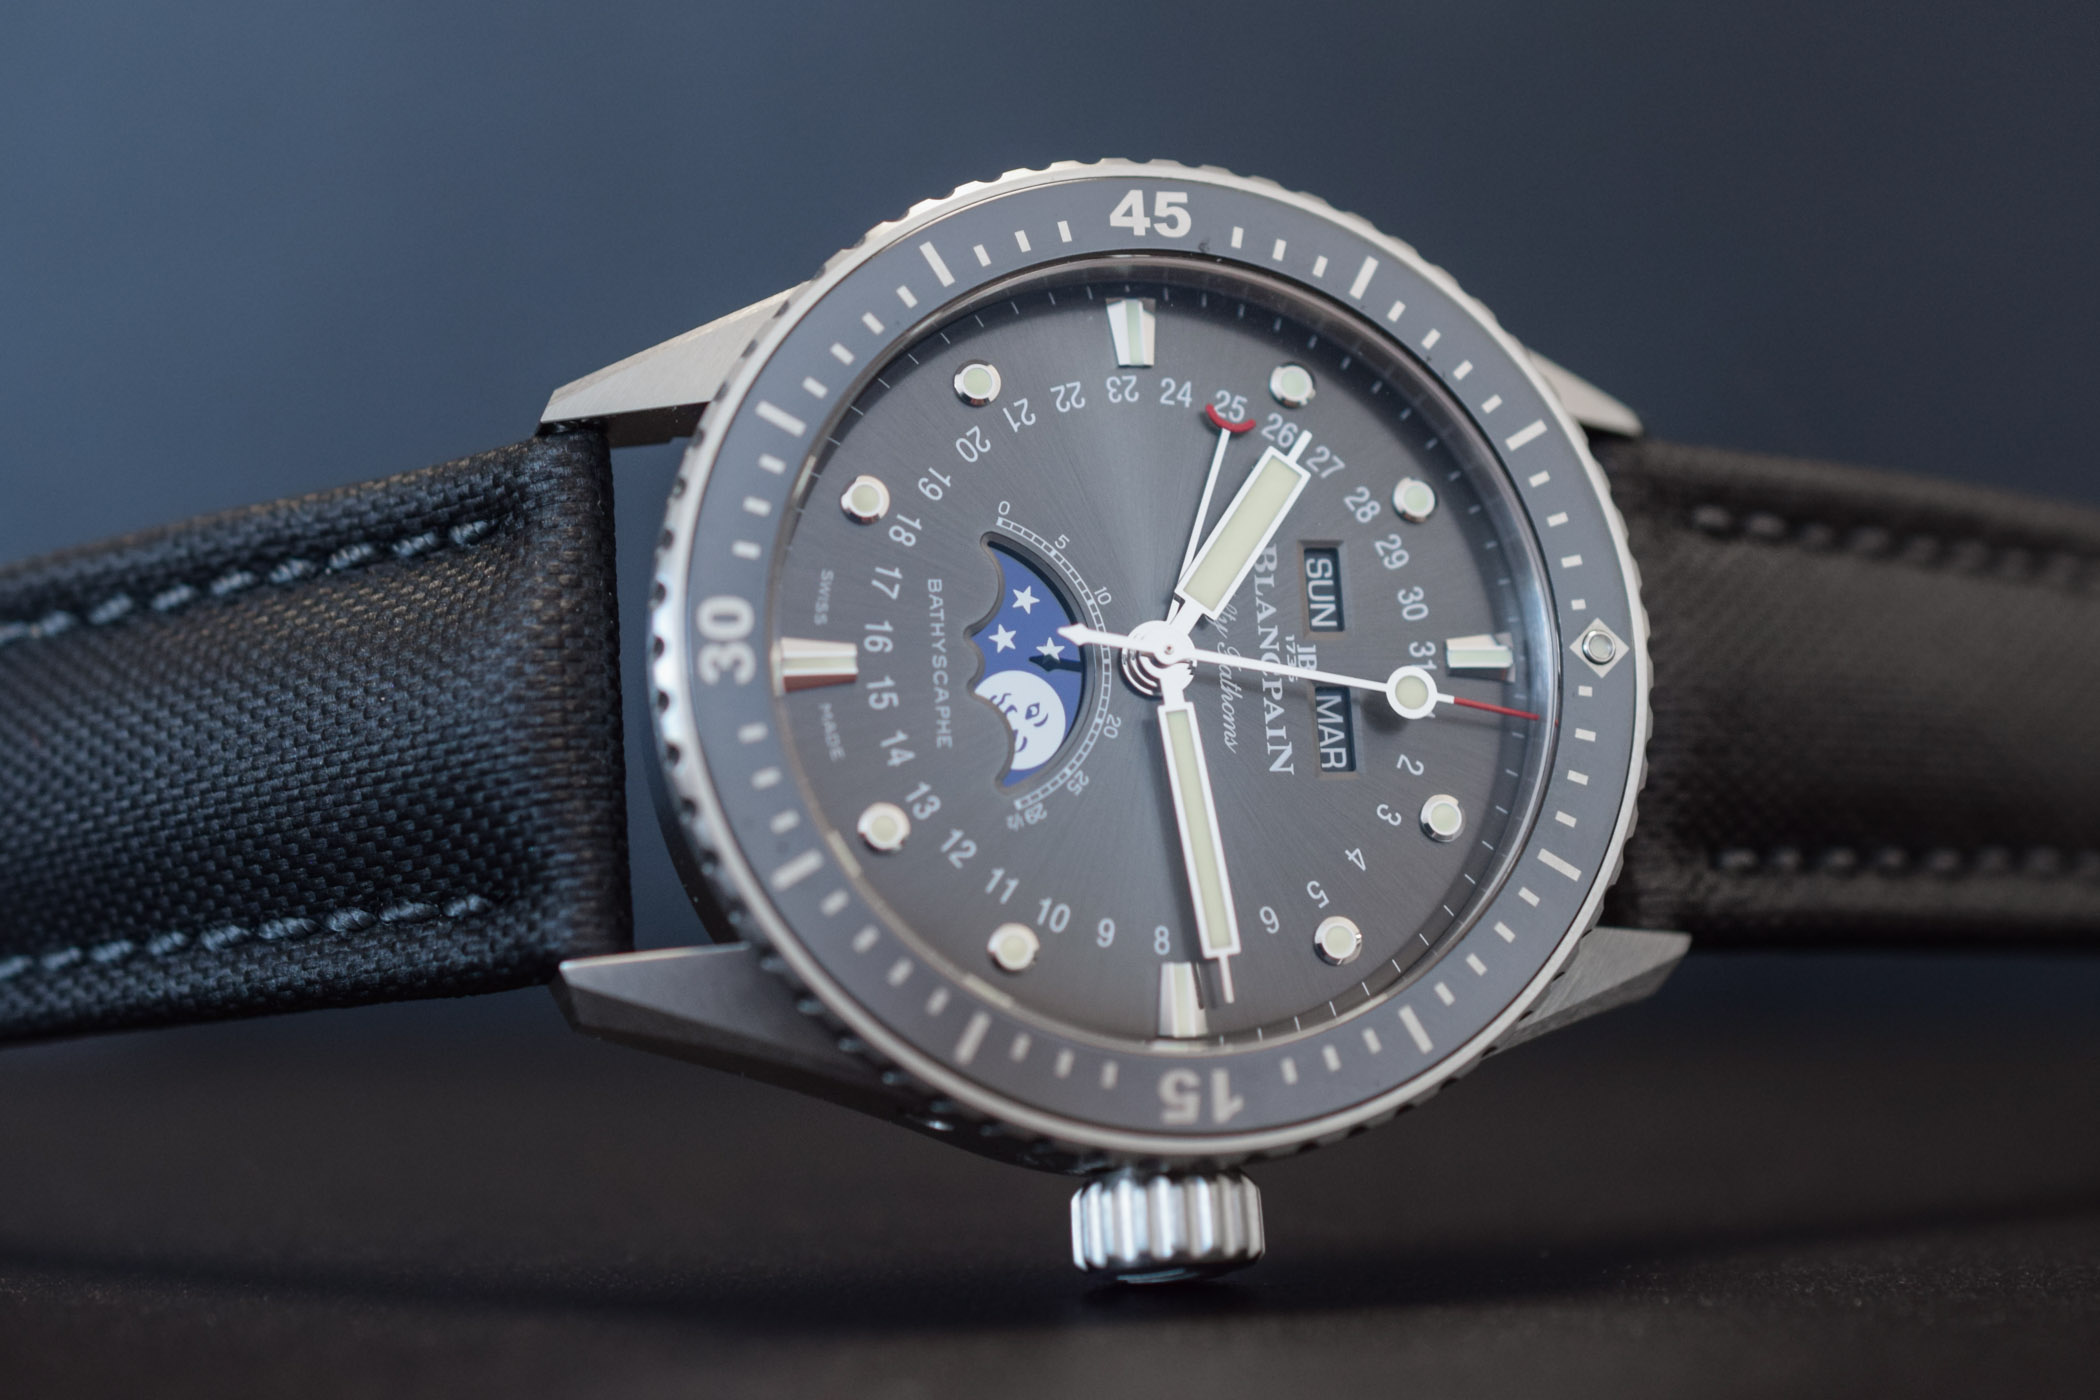 Blancpain Fifty Fathoms Bathyscaphe Quantieme Complet Phase de Lune - review